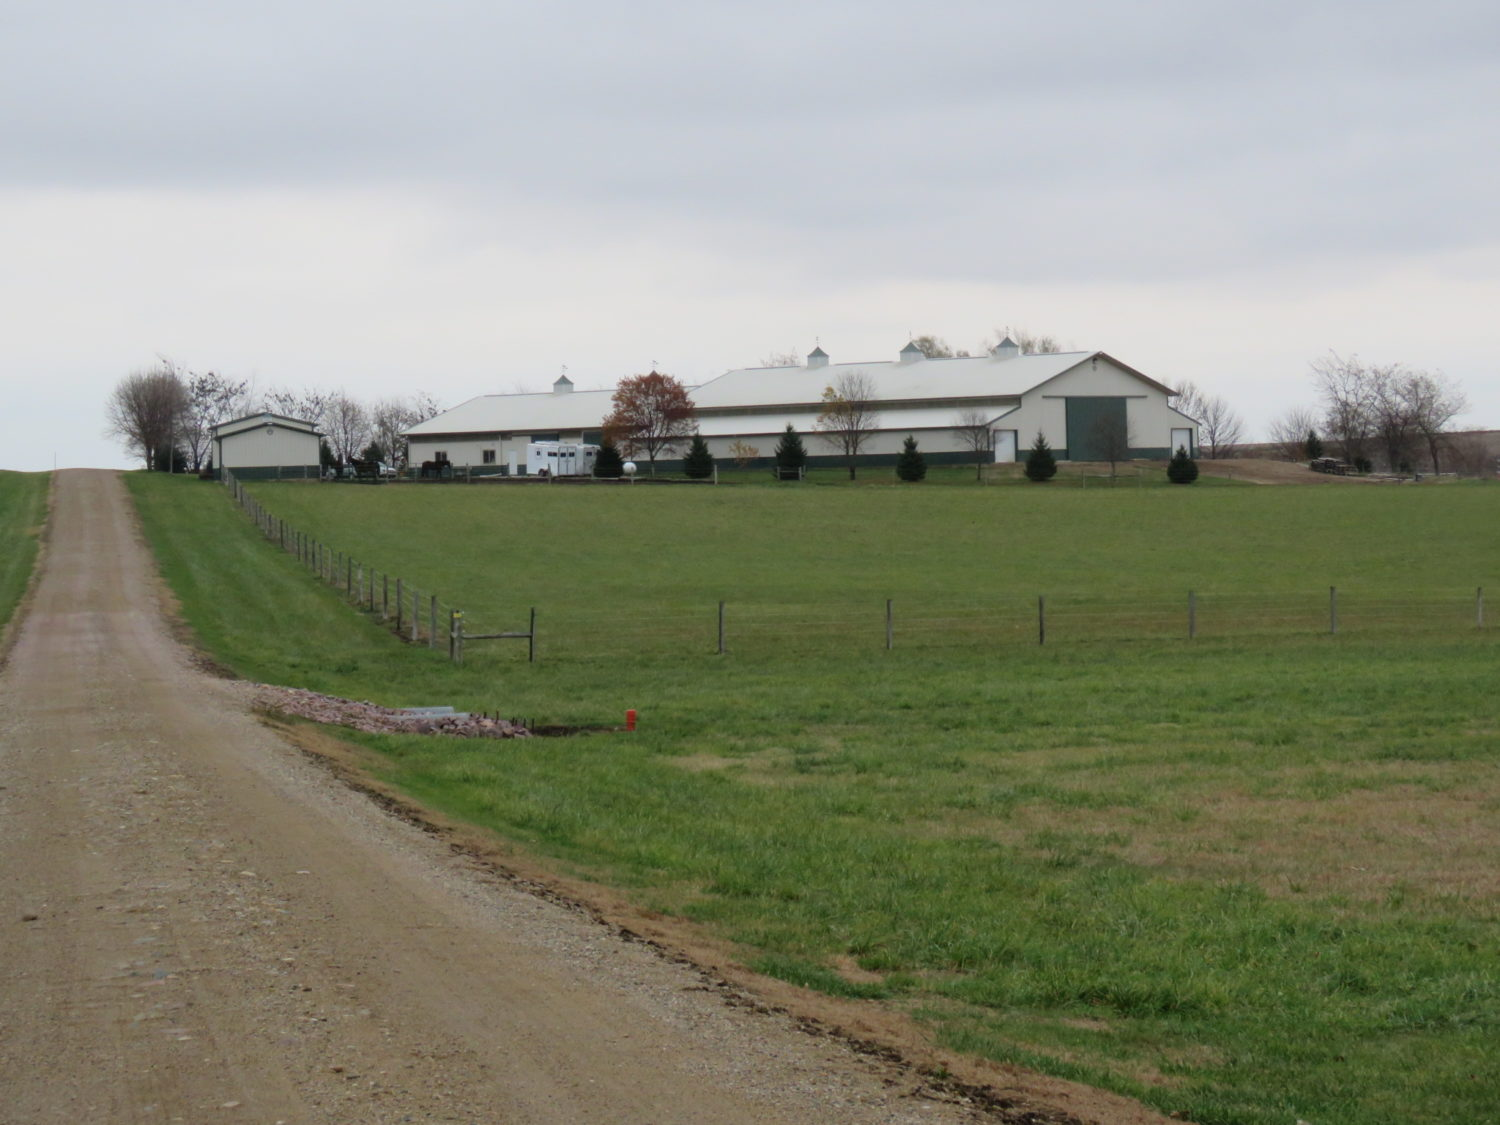 Amazing Real Estate Opportunity-Approx. 73 Acres at Auction- The Valley Springs Farm - image 1